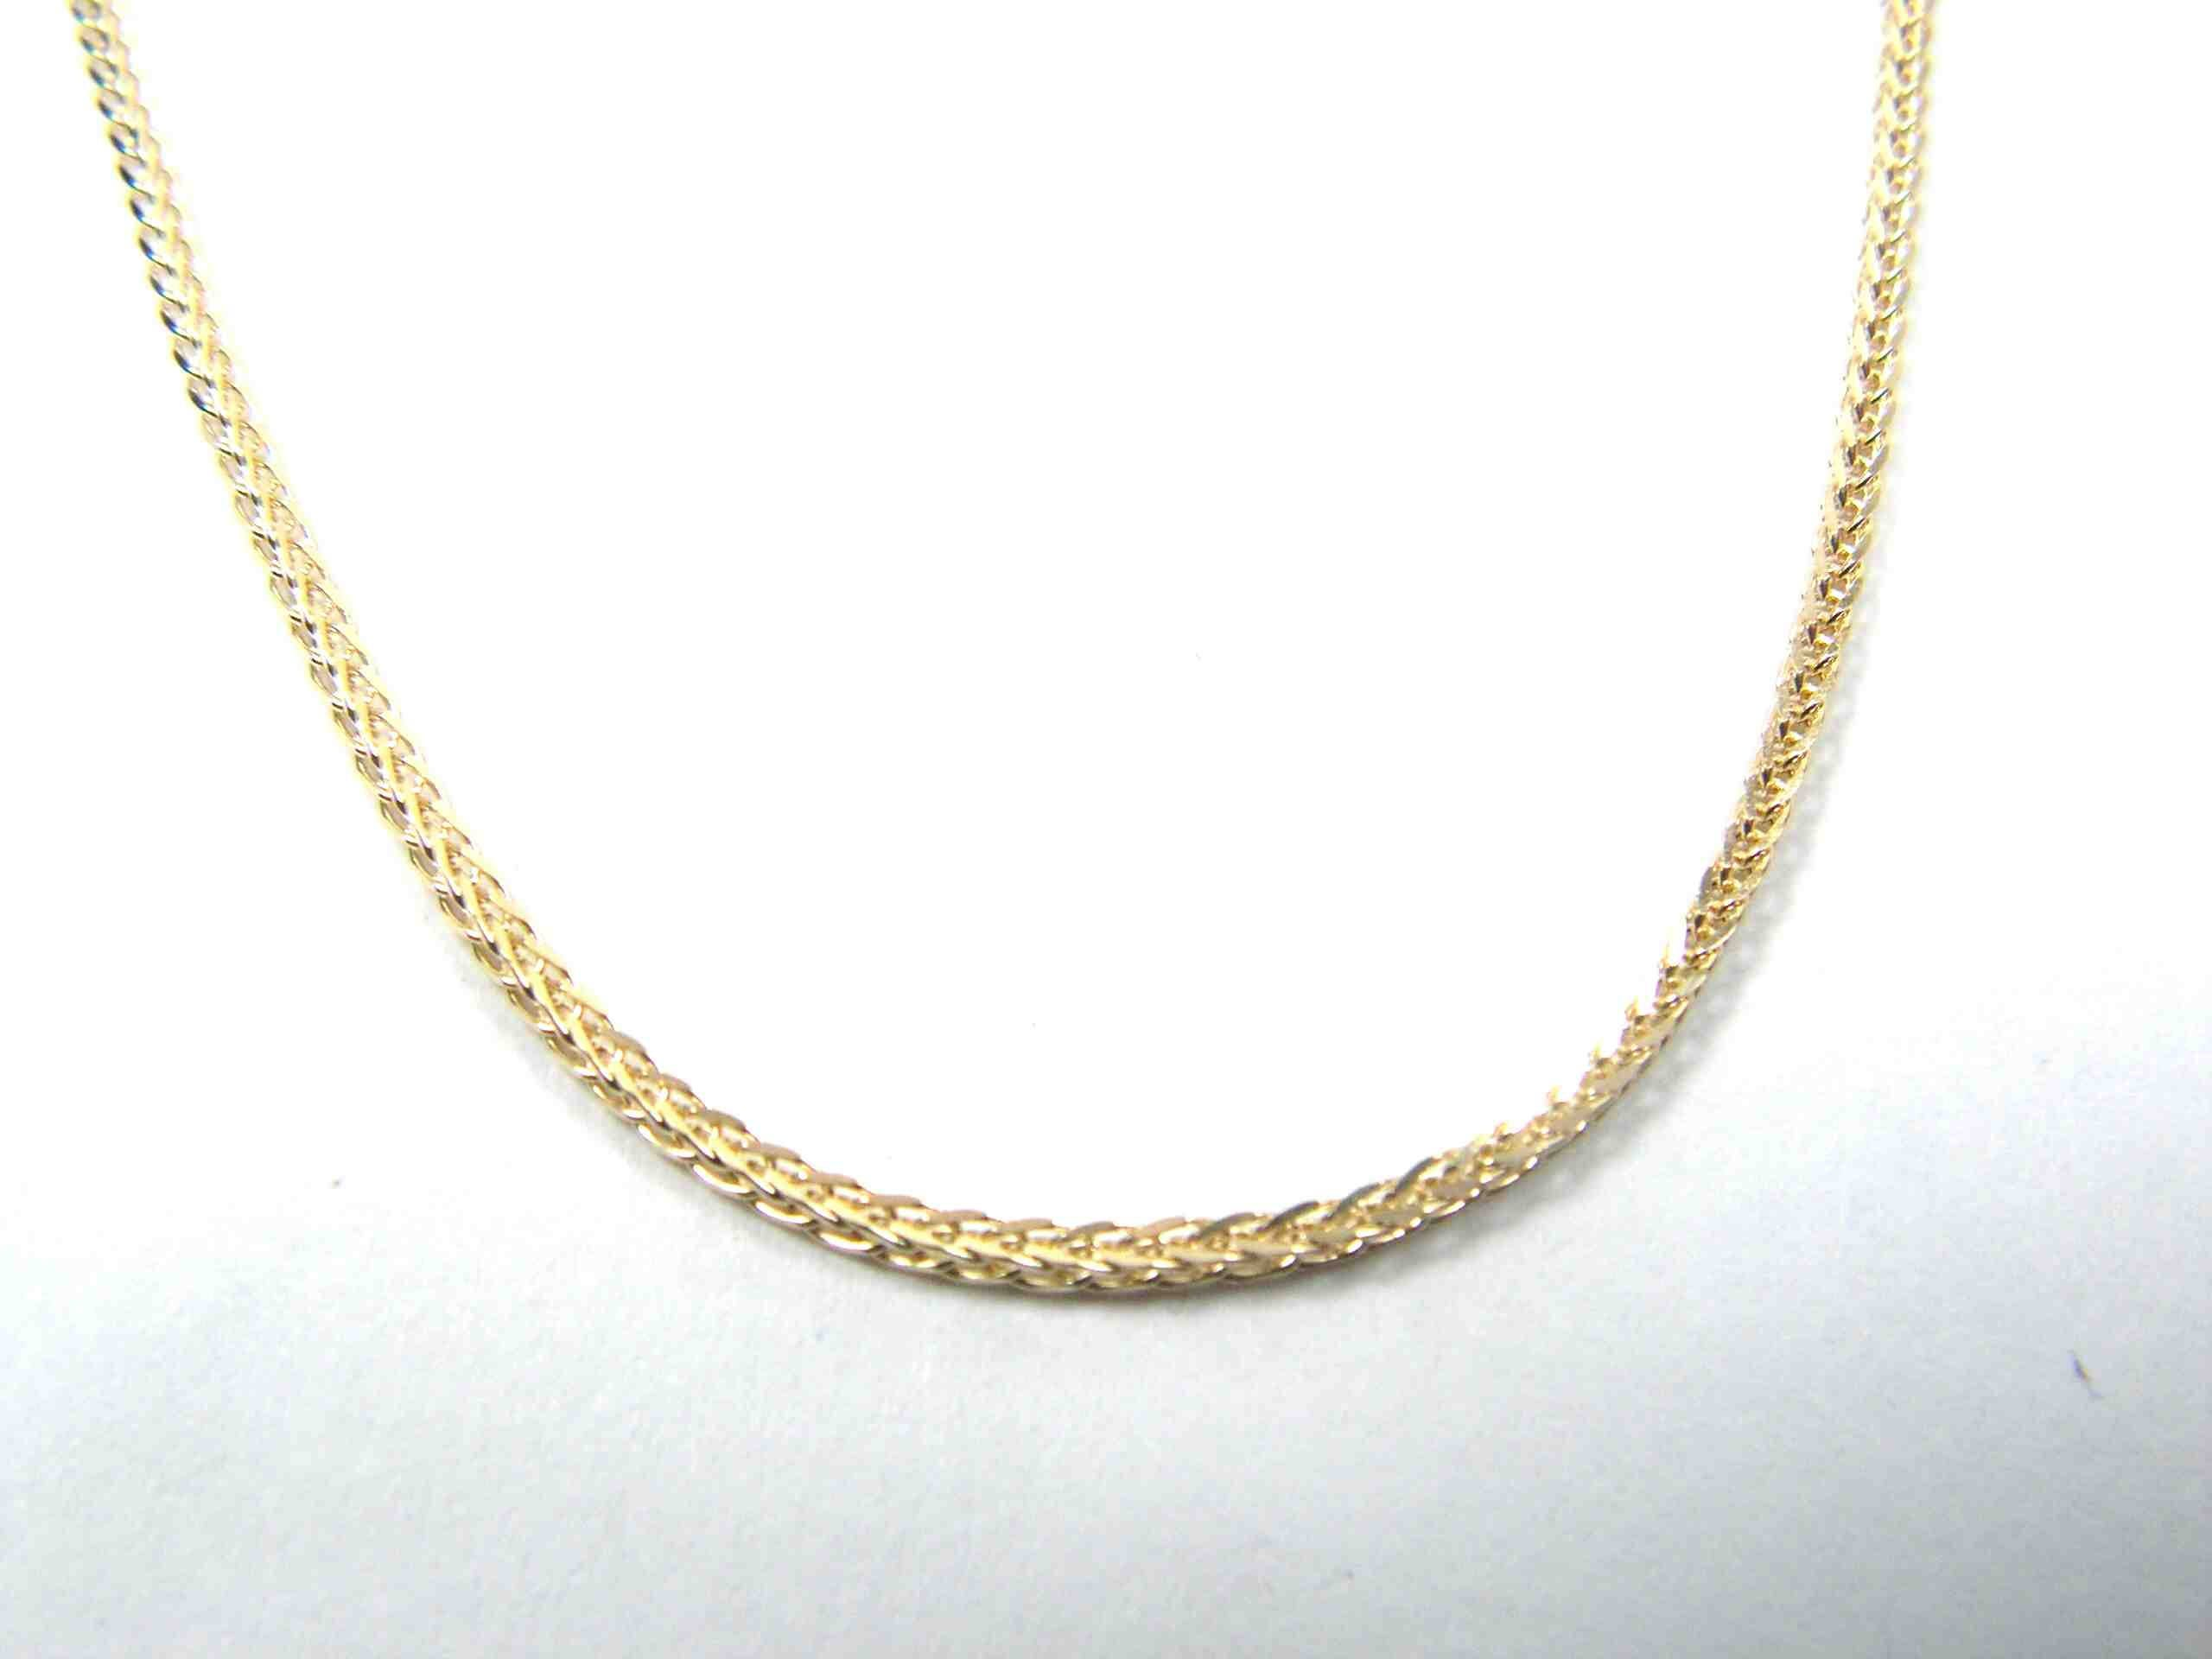 u gold collections co jewellery on chains orders rope free shipping enjoy chain s if min